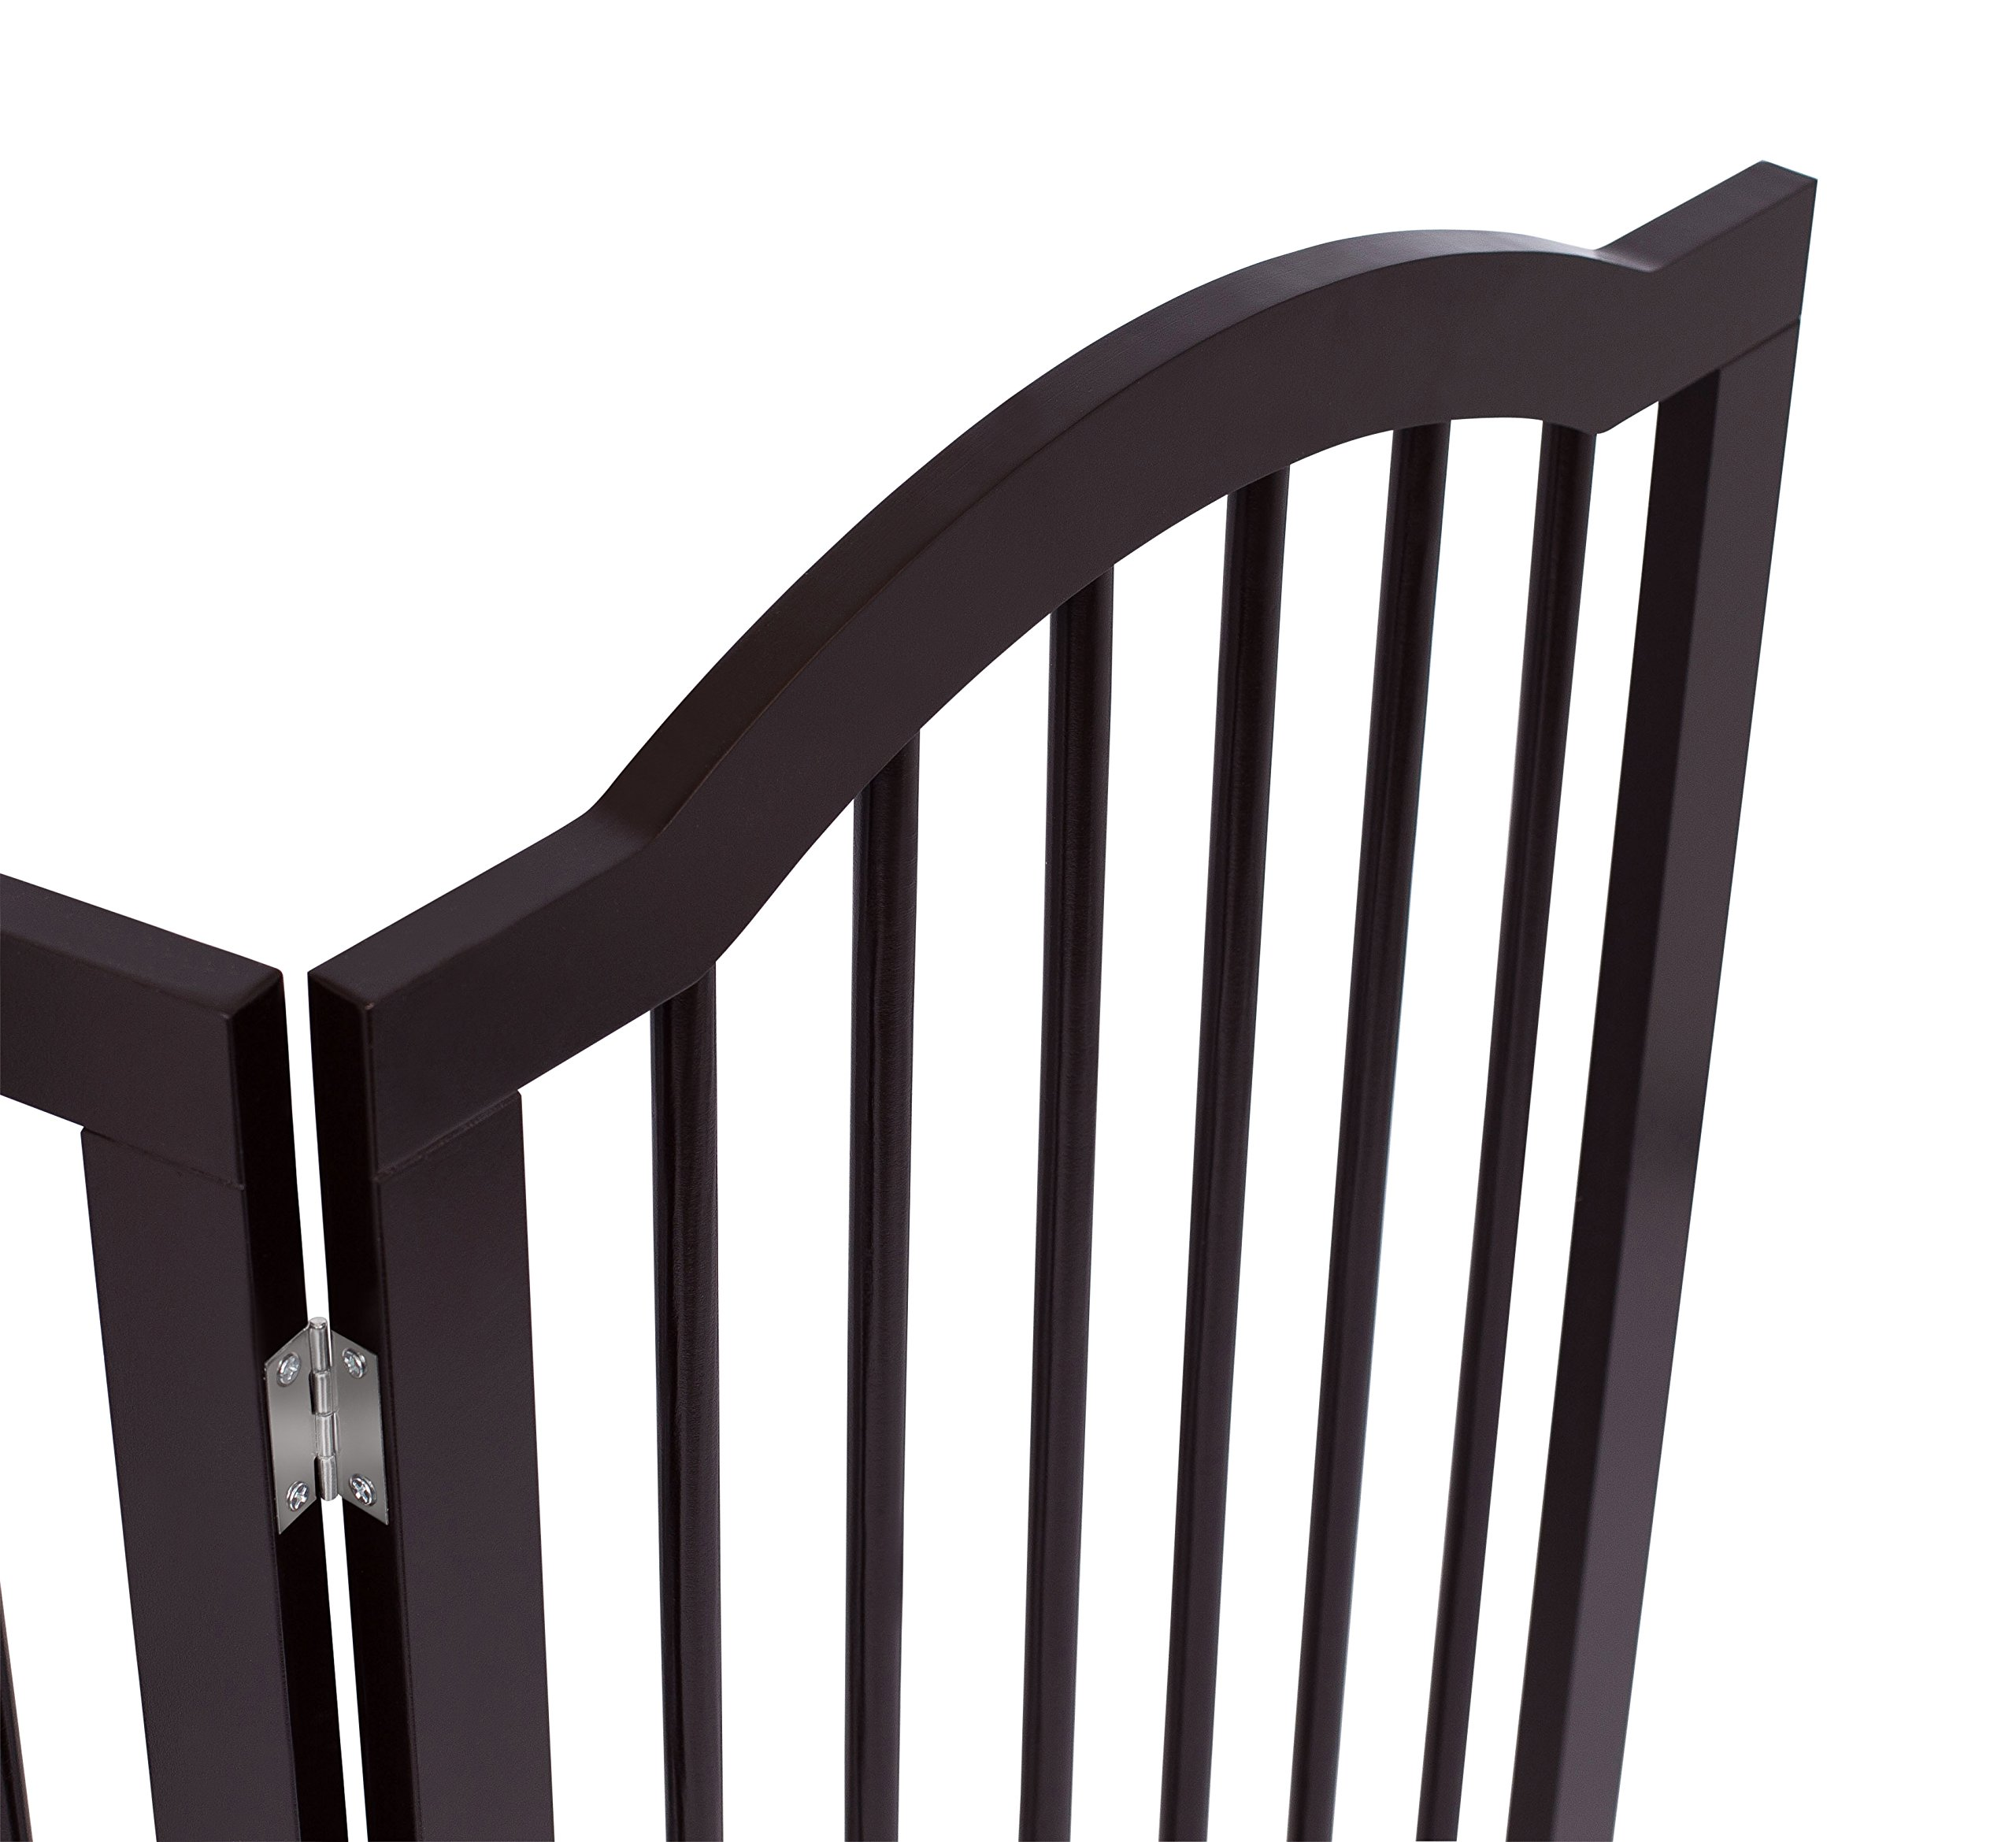 Internet's Best Pet Gate with Arched Top   4 Panel   36 Inch Tall Fence   Free Standing Folding Z Shape Indoor Doorway Hall Stairs Dog Puppy Gate   Fully Assembled   Espresso   Wooden by Internet's Best (Image #5)